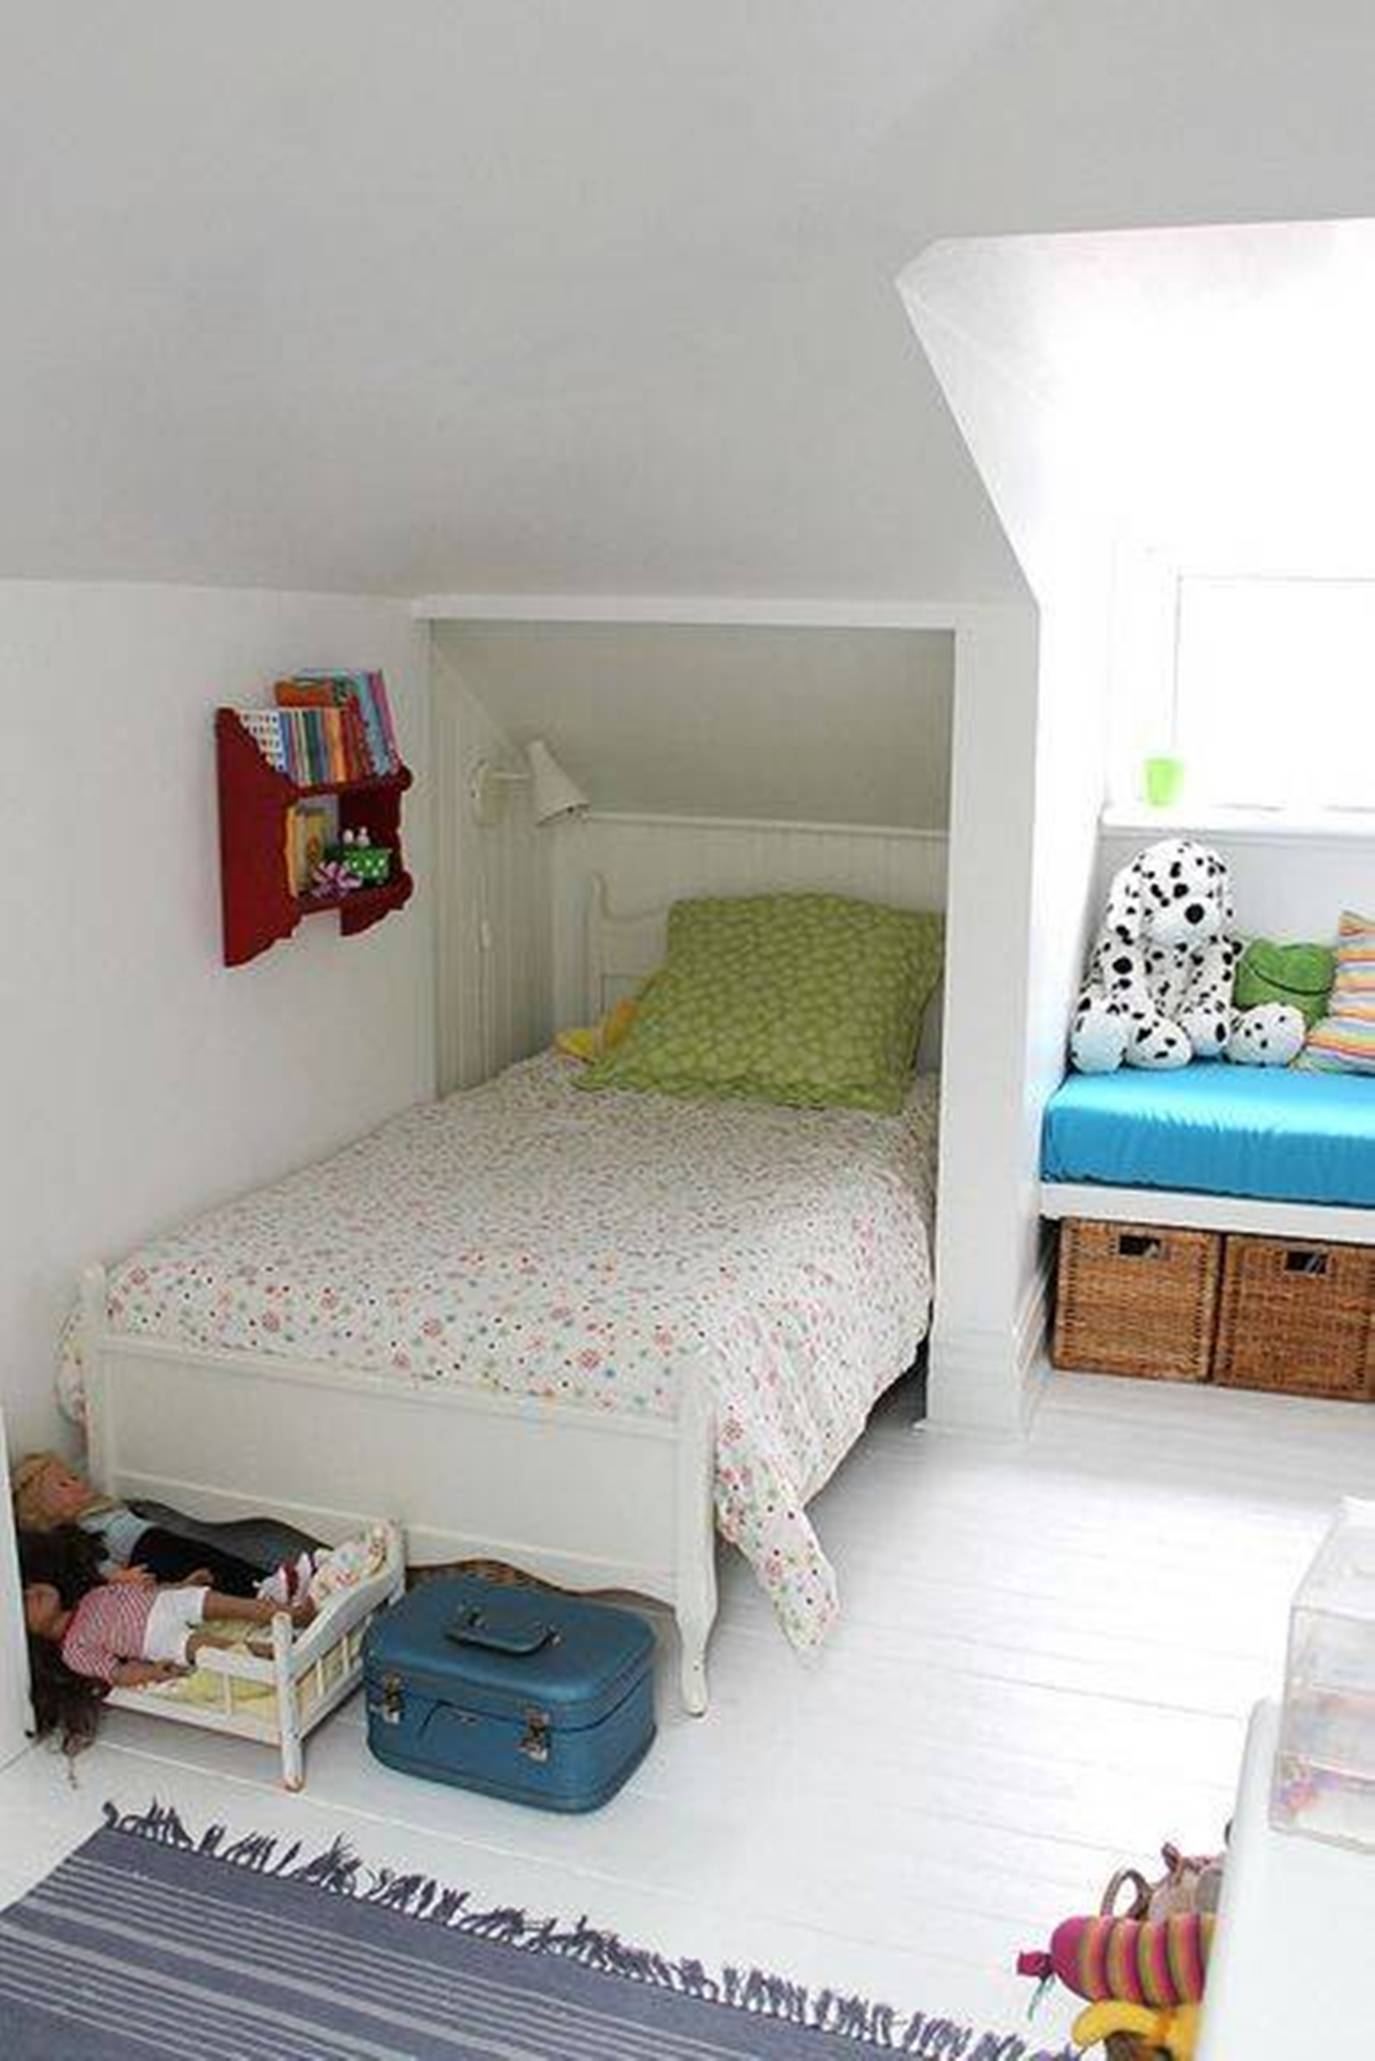 Adorable designs for an attic space Small space design ideas